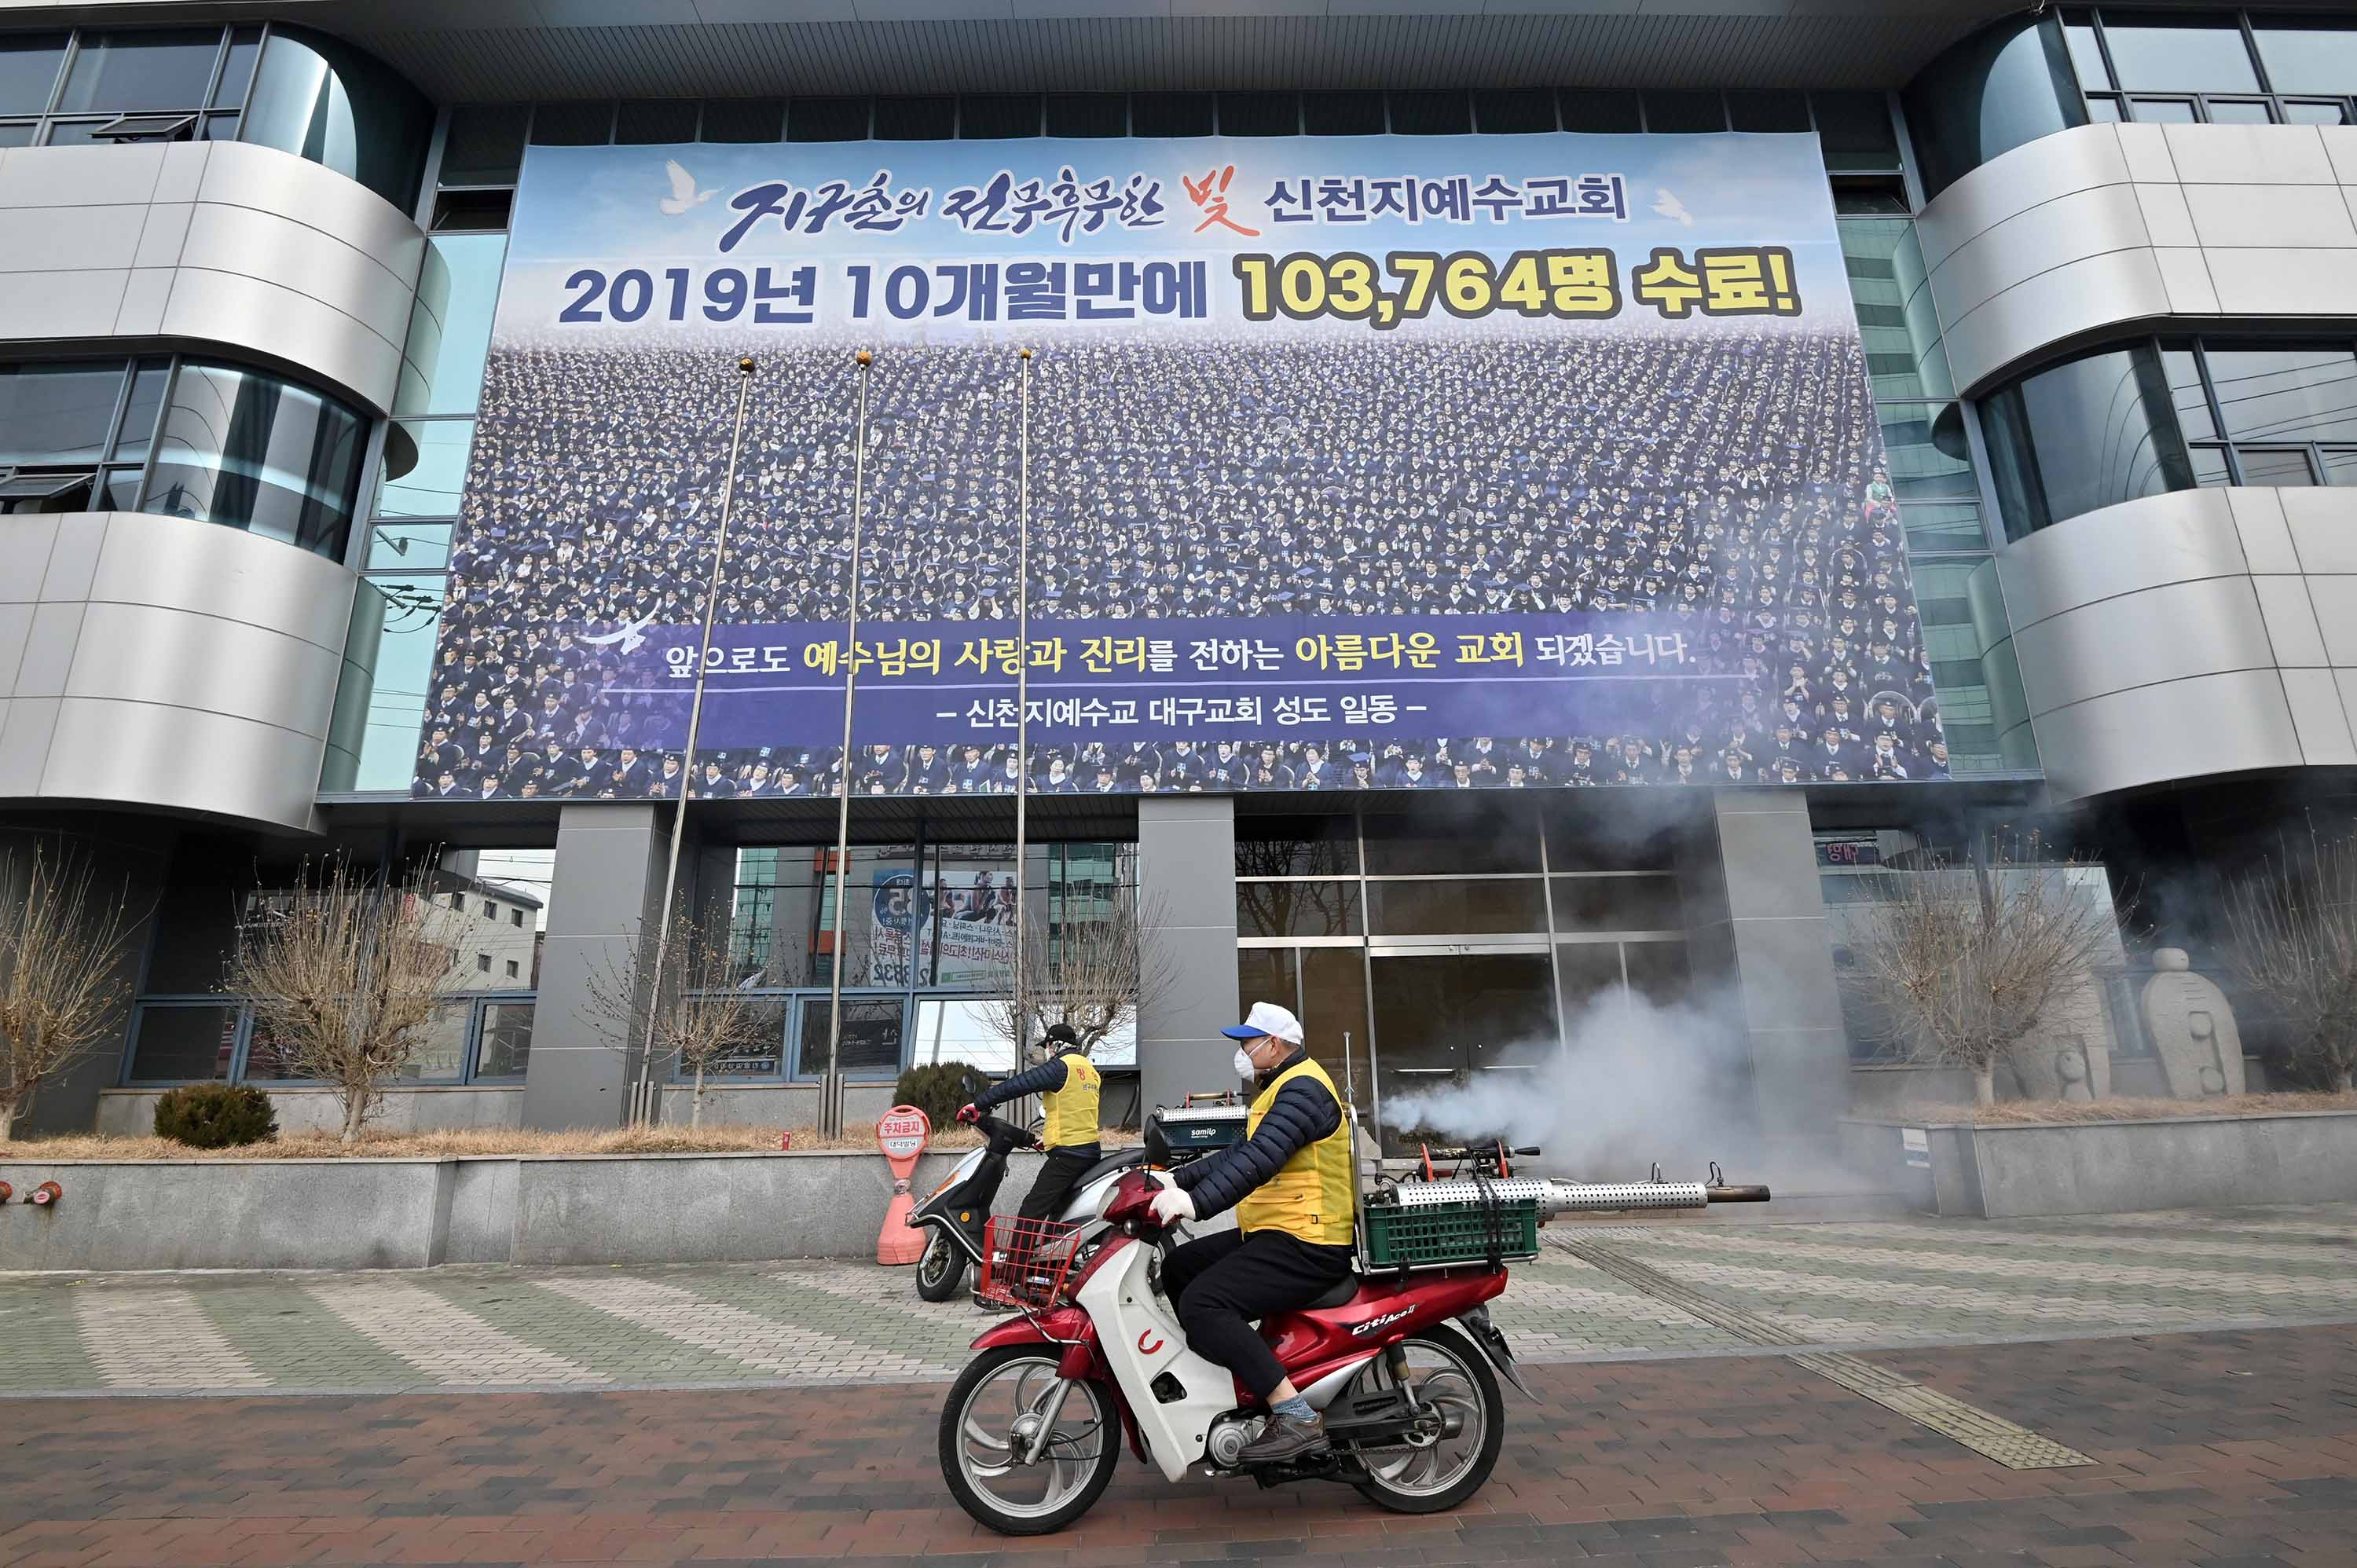 South Korean health officials spray disinfectant in front of the Daegu branch of the Shincheonji Church of Jesus in Daegu, South Korea, on February 21.